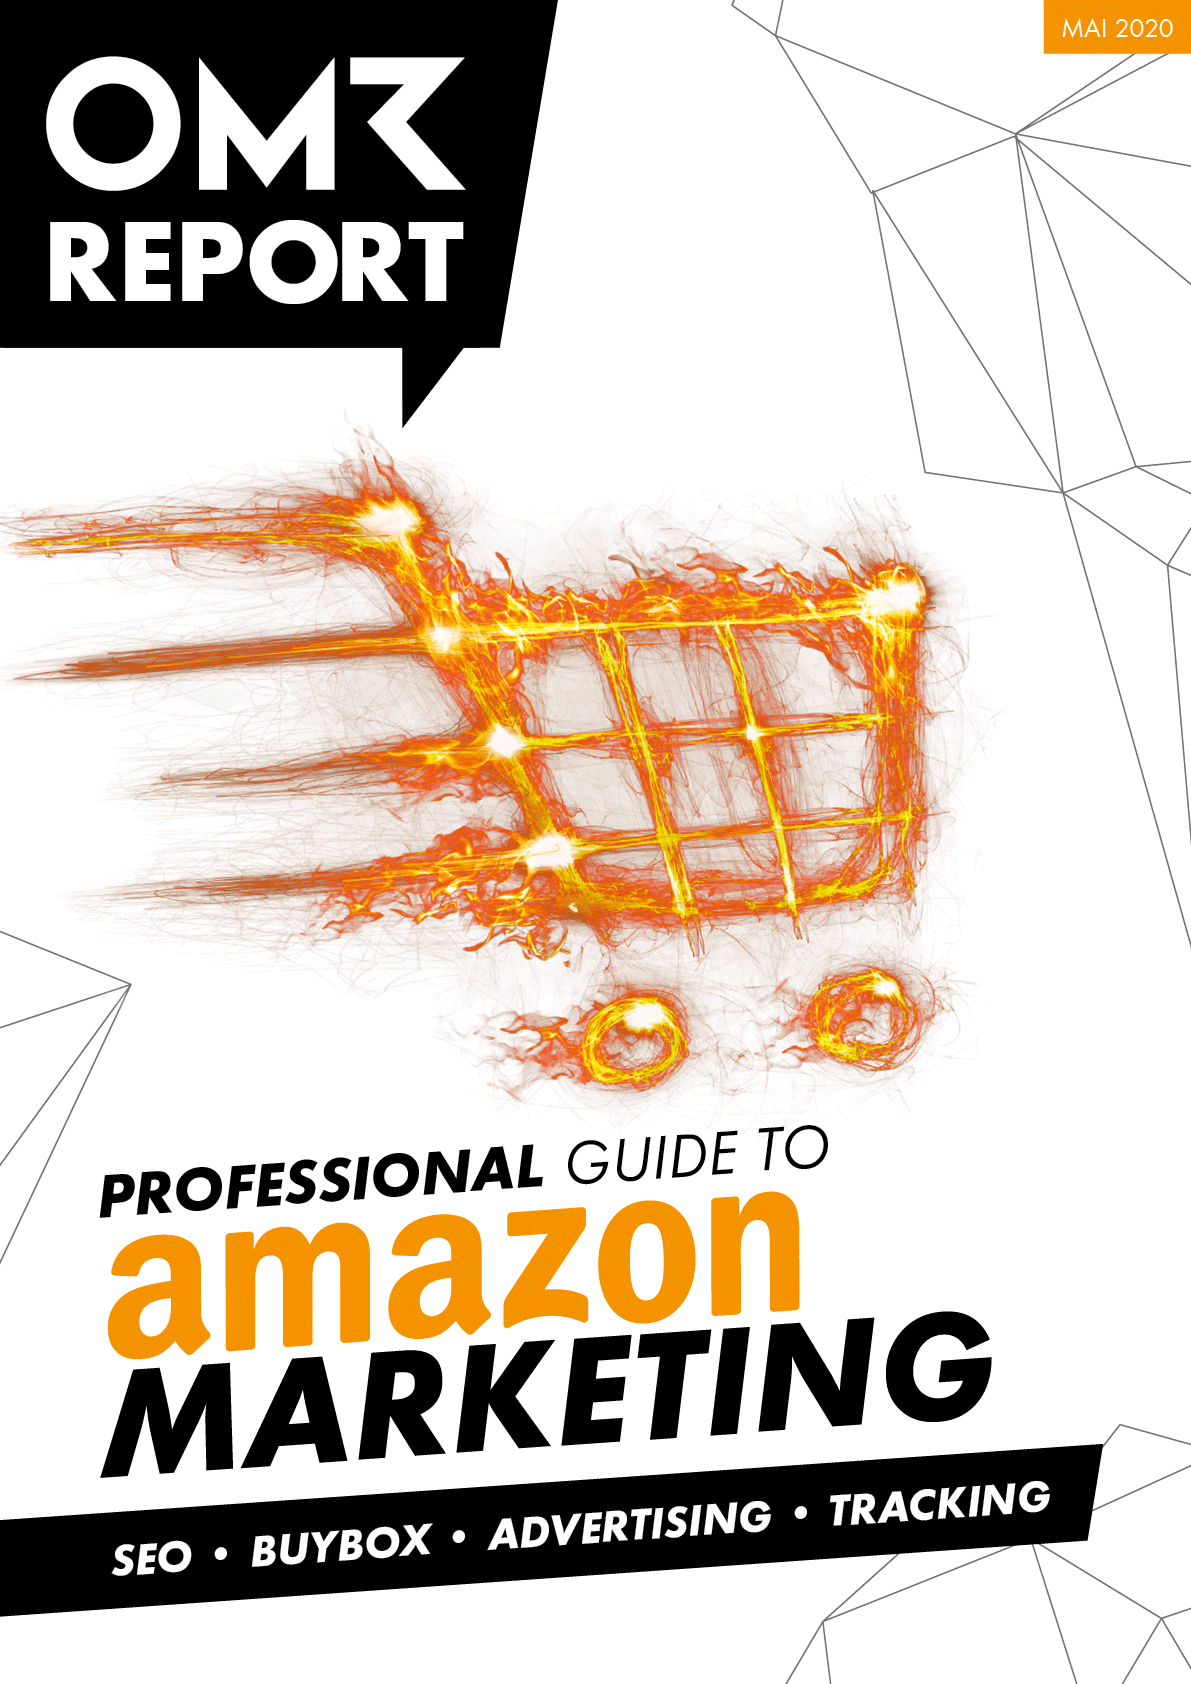 Professional Guide to Amazon Marketing